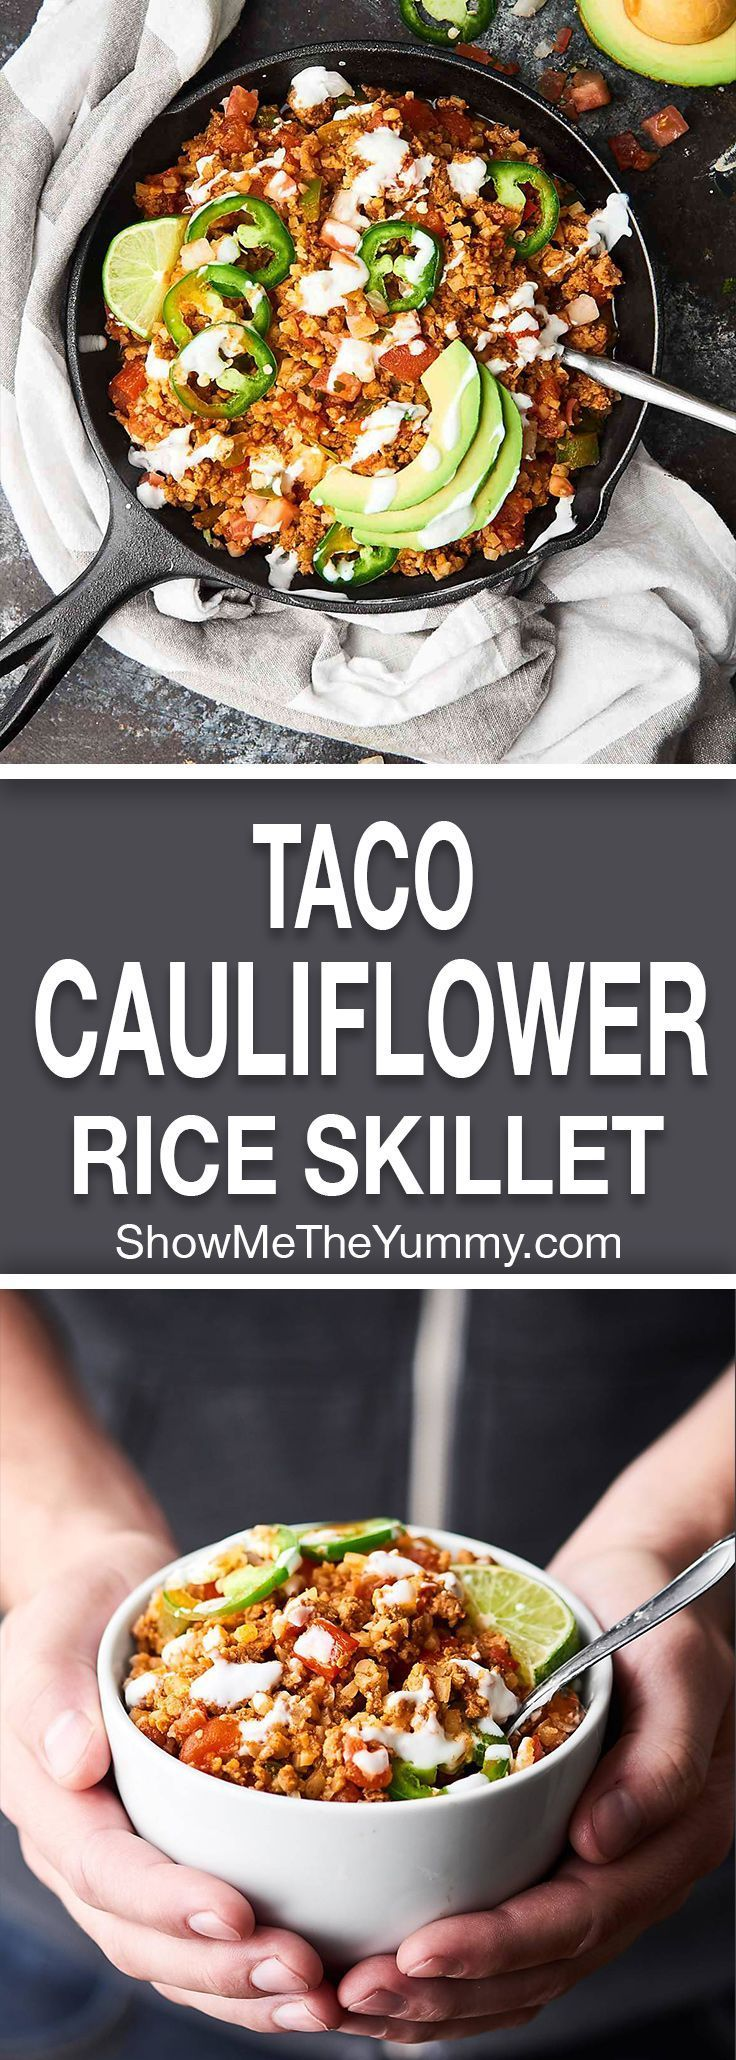 This Taco Cauliflower Rice Skillet is quick, easy, healthy, low carb, and absolutely delicious! Loaded with ground turkey or chicken, vegetables, and frozen cauliflower rice! showmetheyummy.com #cauliflowerrice #taco